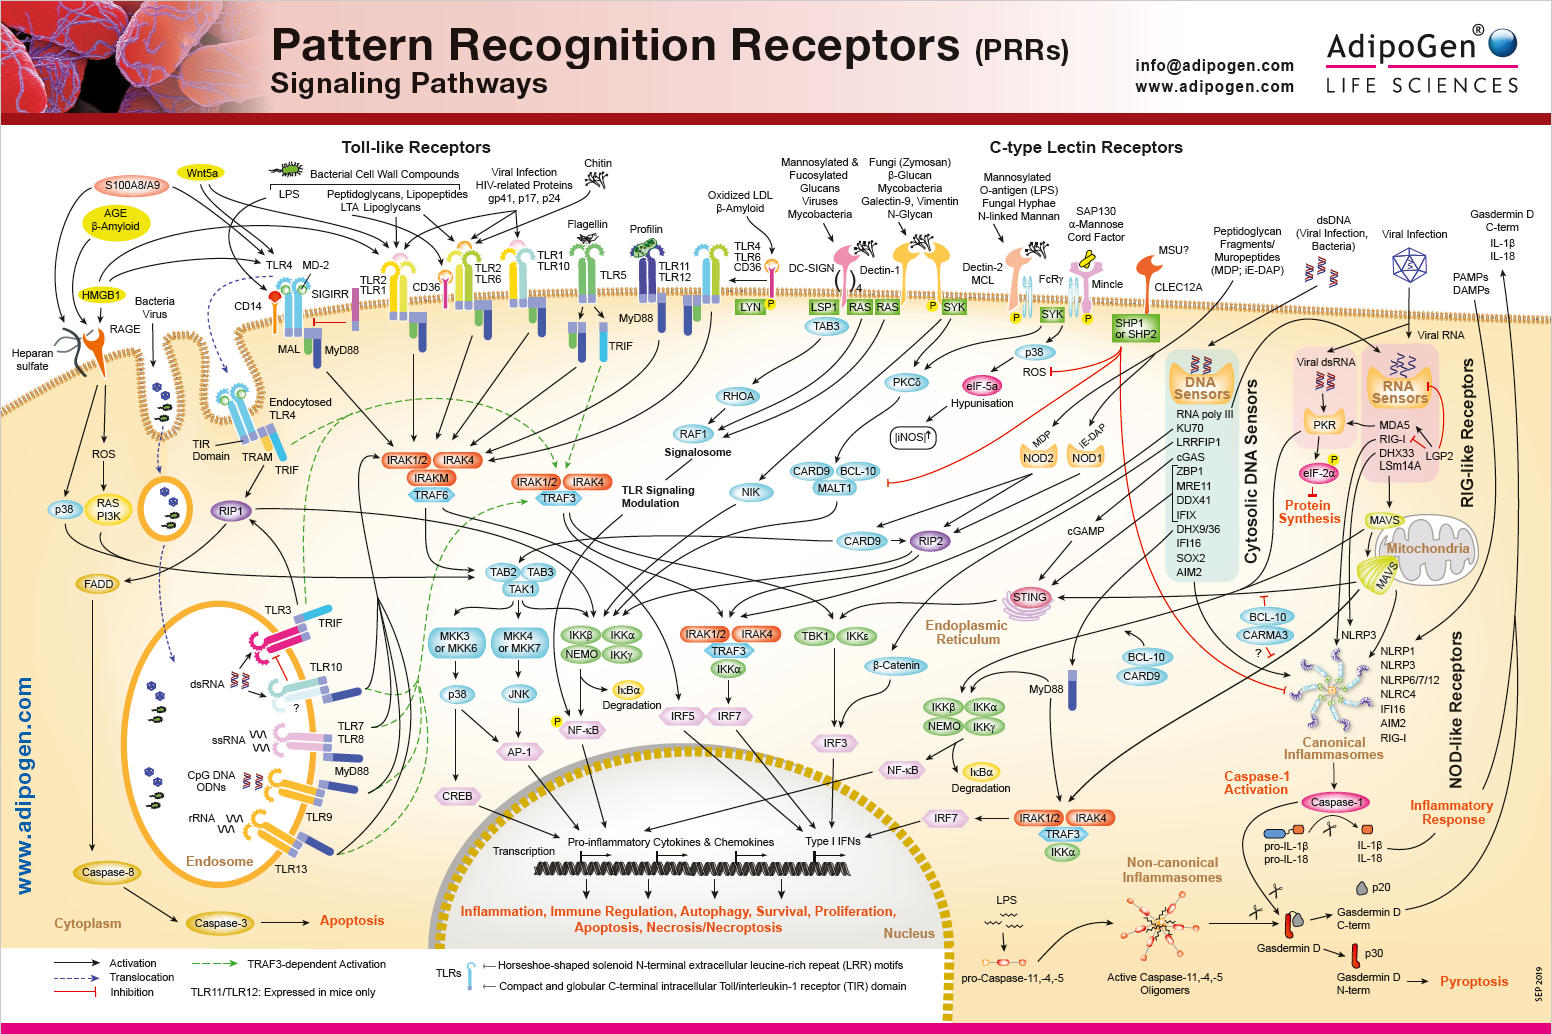 Pattern Recognition Receptors Signaling Wallchart 2019